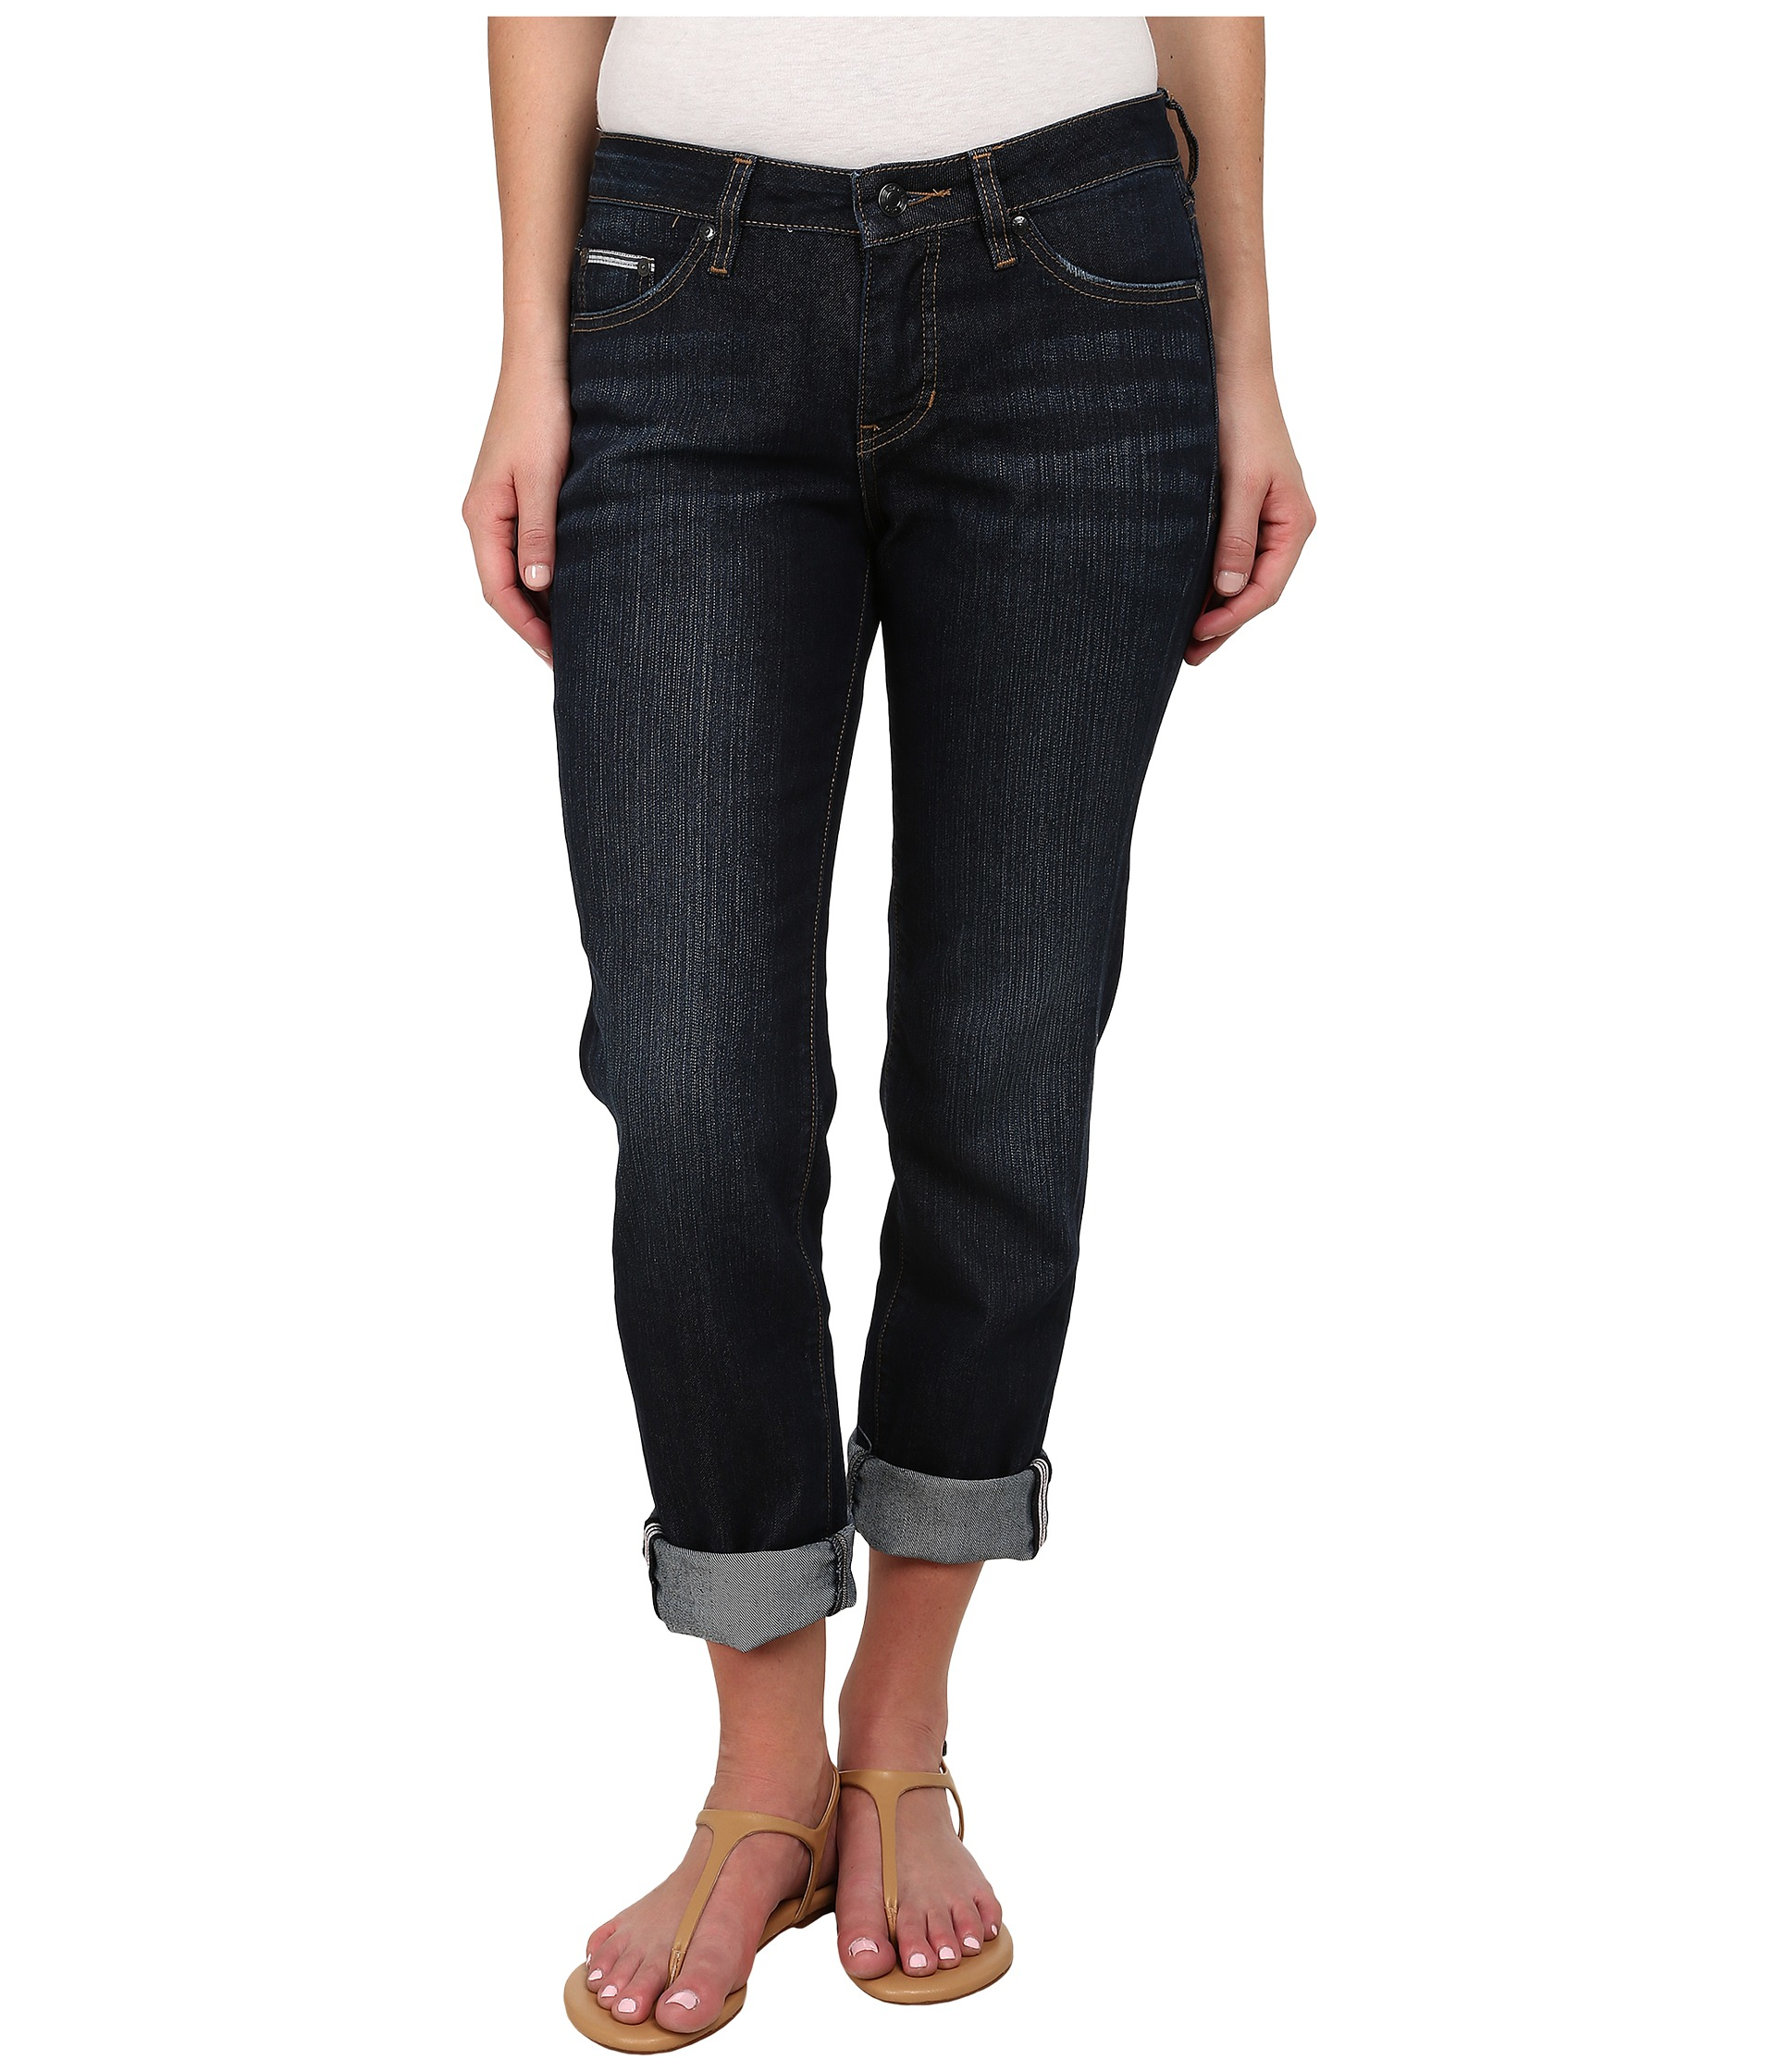 Lyst - Jag Jeans Henry Relaxed Boyfriend In Bowie Blue in Blue